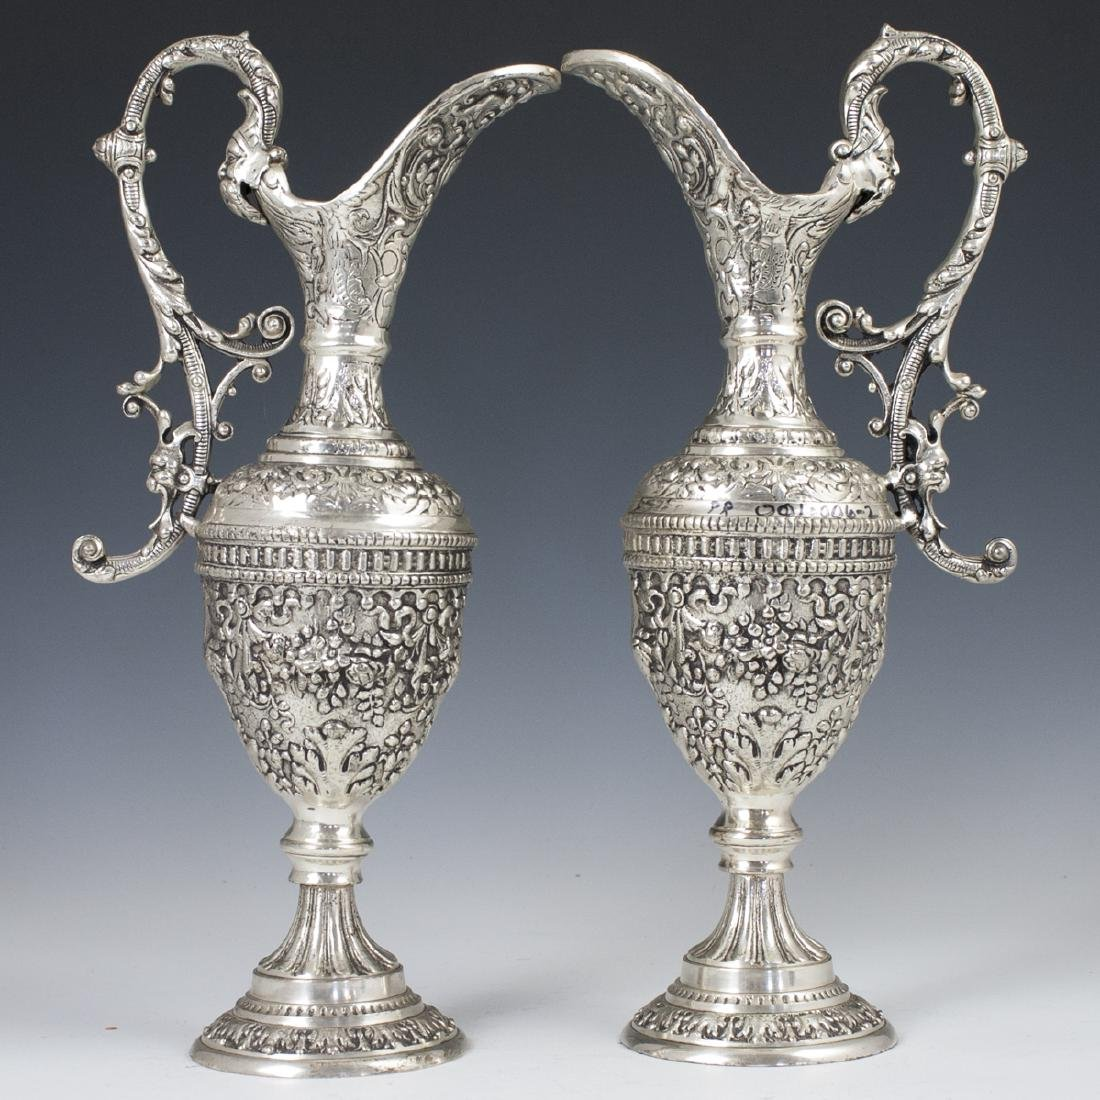 Vintage Baroque Silver Plated Ewers